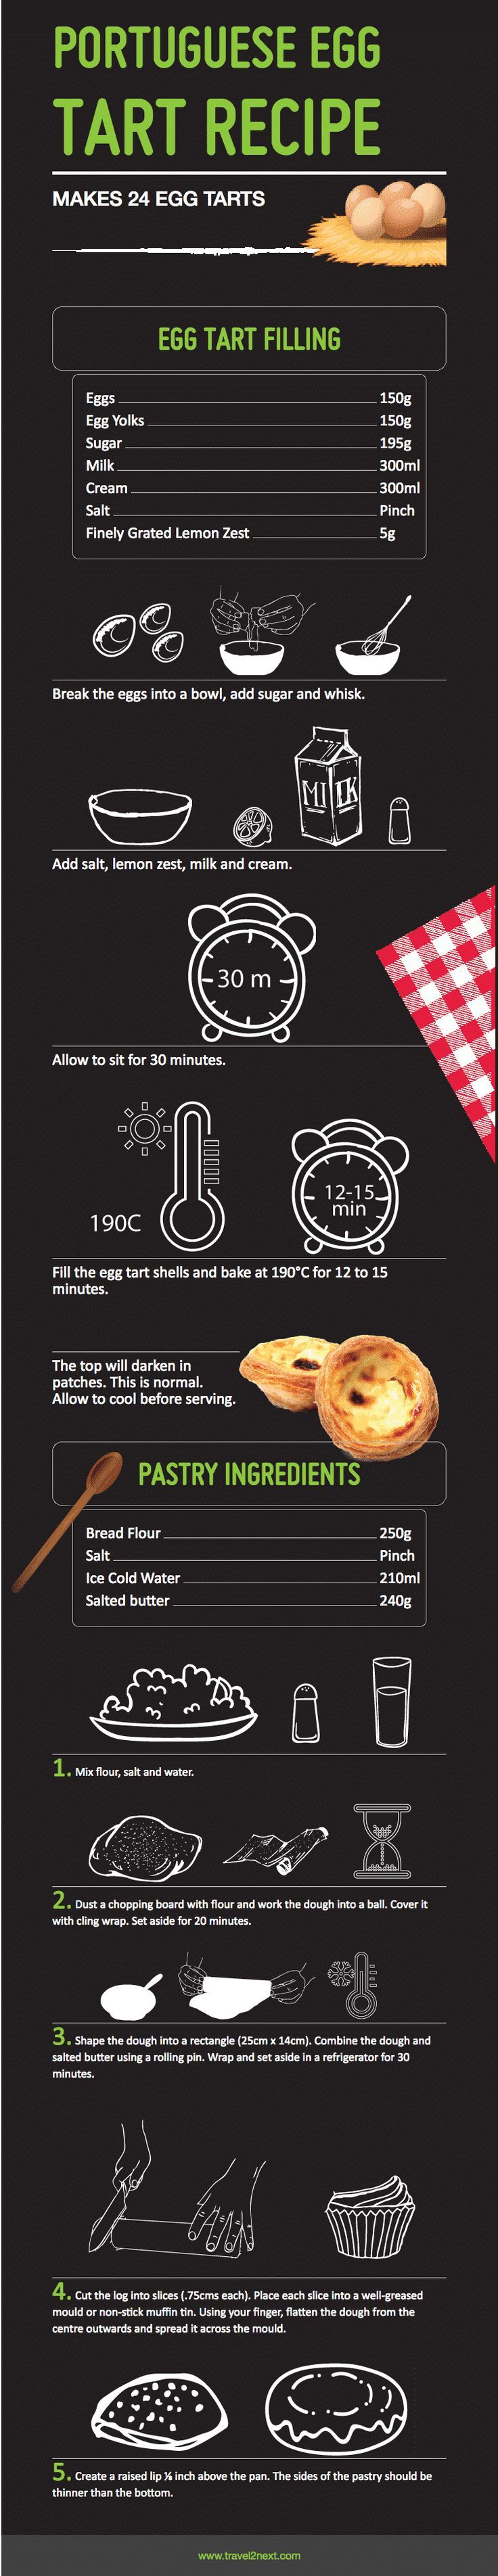 Egg tart recipe of the Portuguese Egg Tart created by Andrew Maree, Executive Chef at The Parisian Macao.